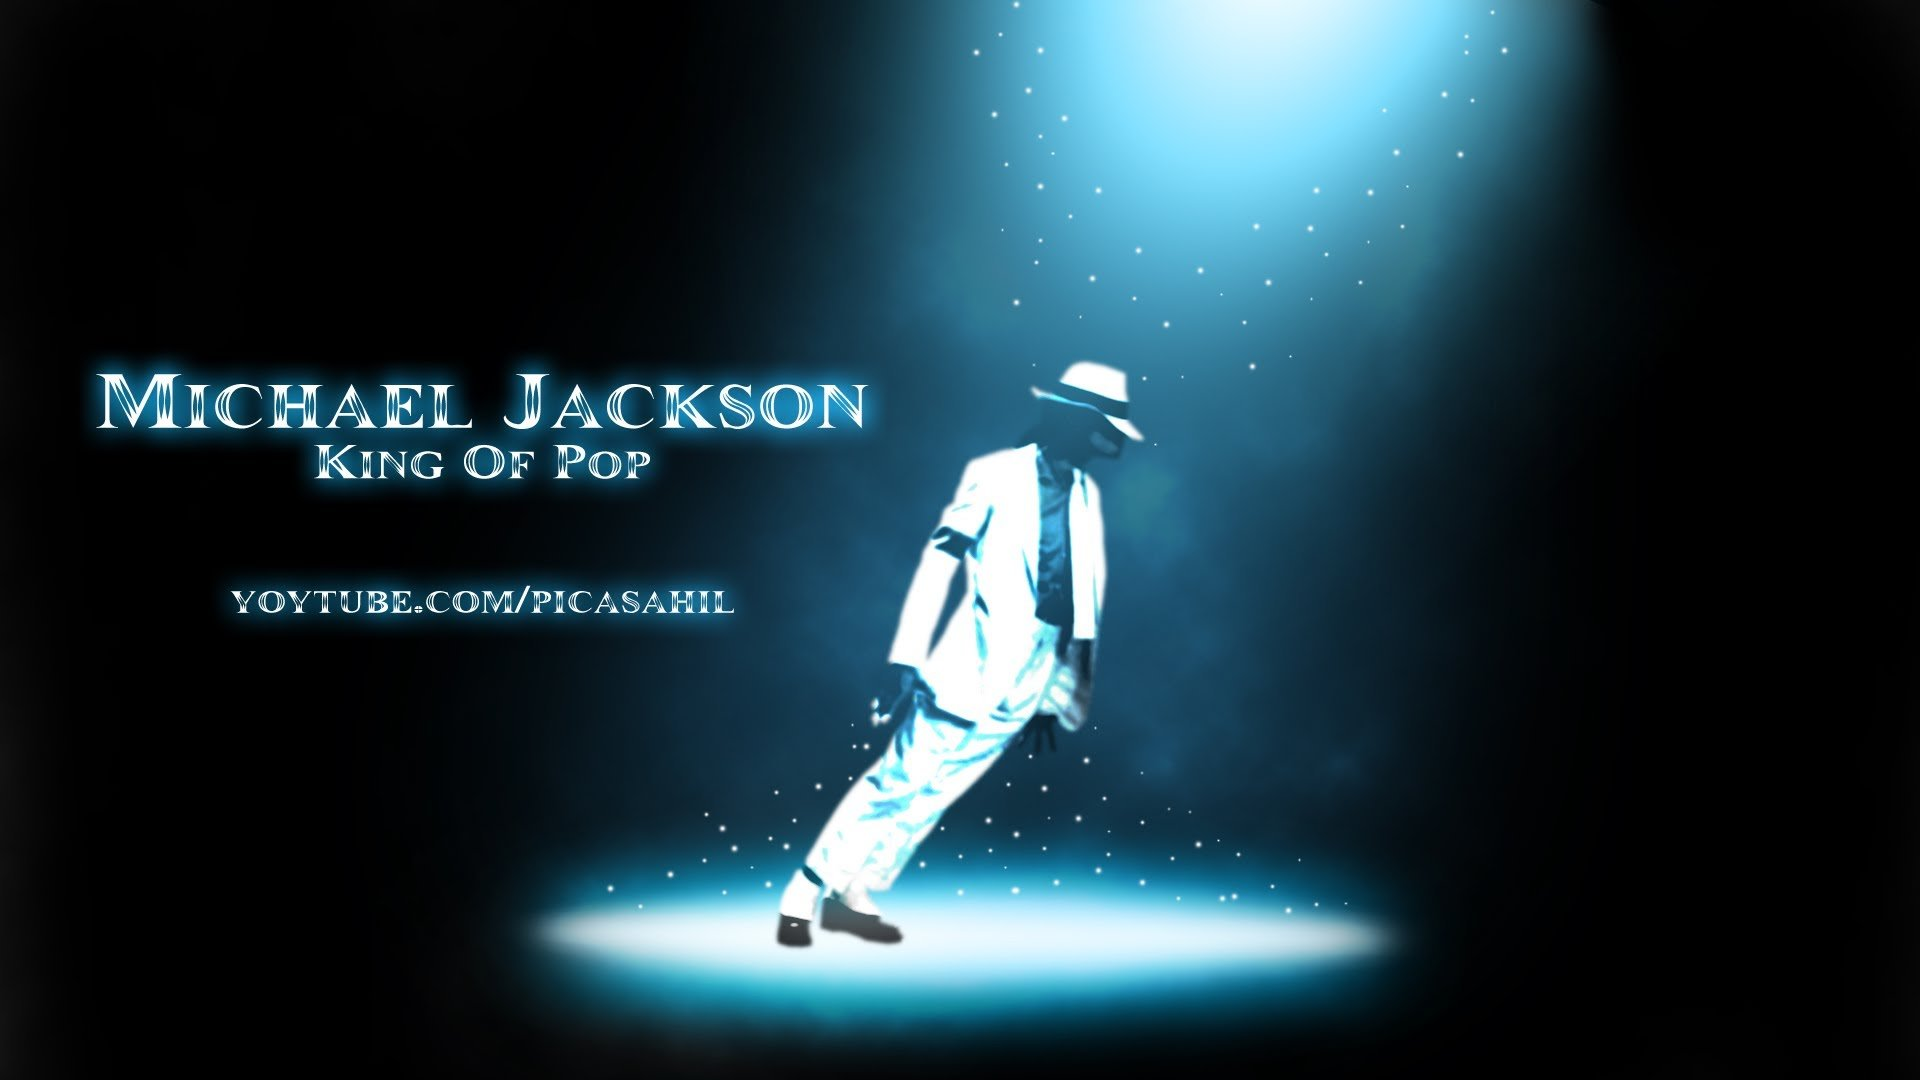 Michael Jackson Moonwalk Wallpapers Photo Festival Wallpaper 1920x1080